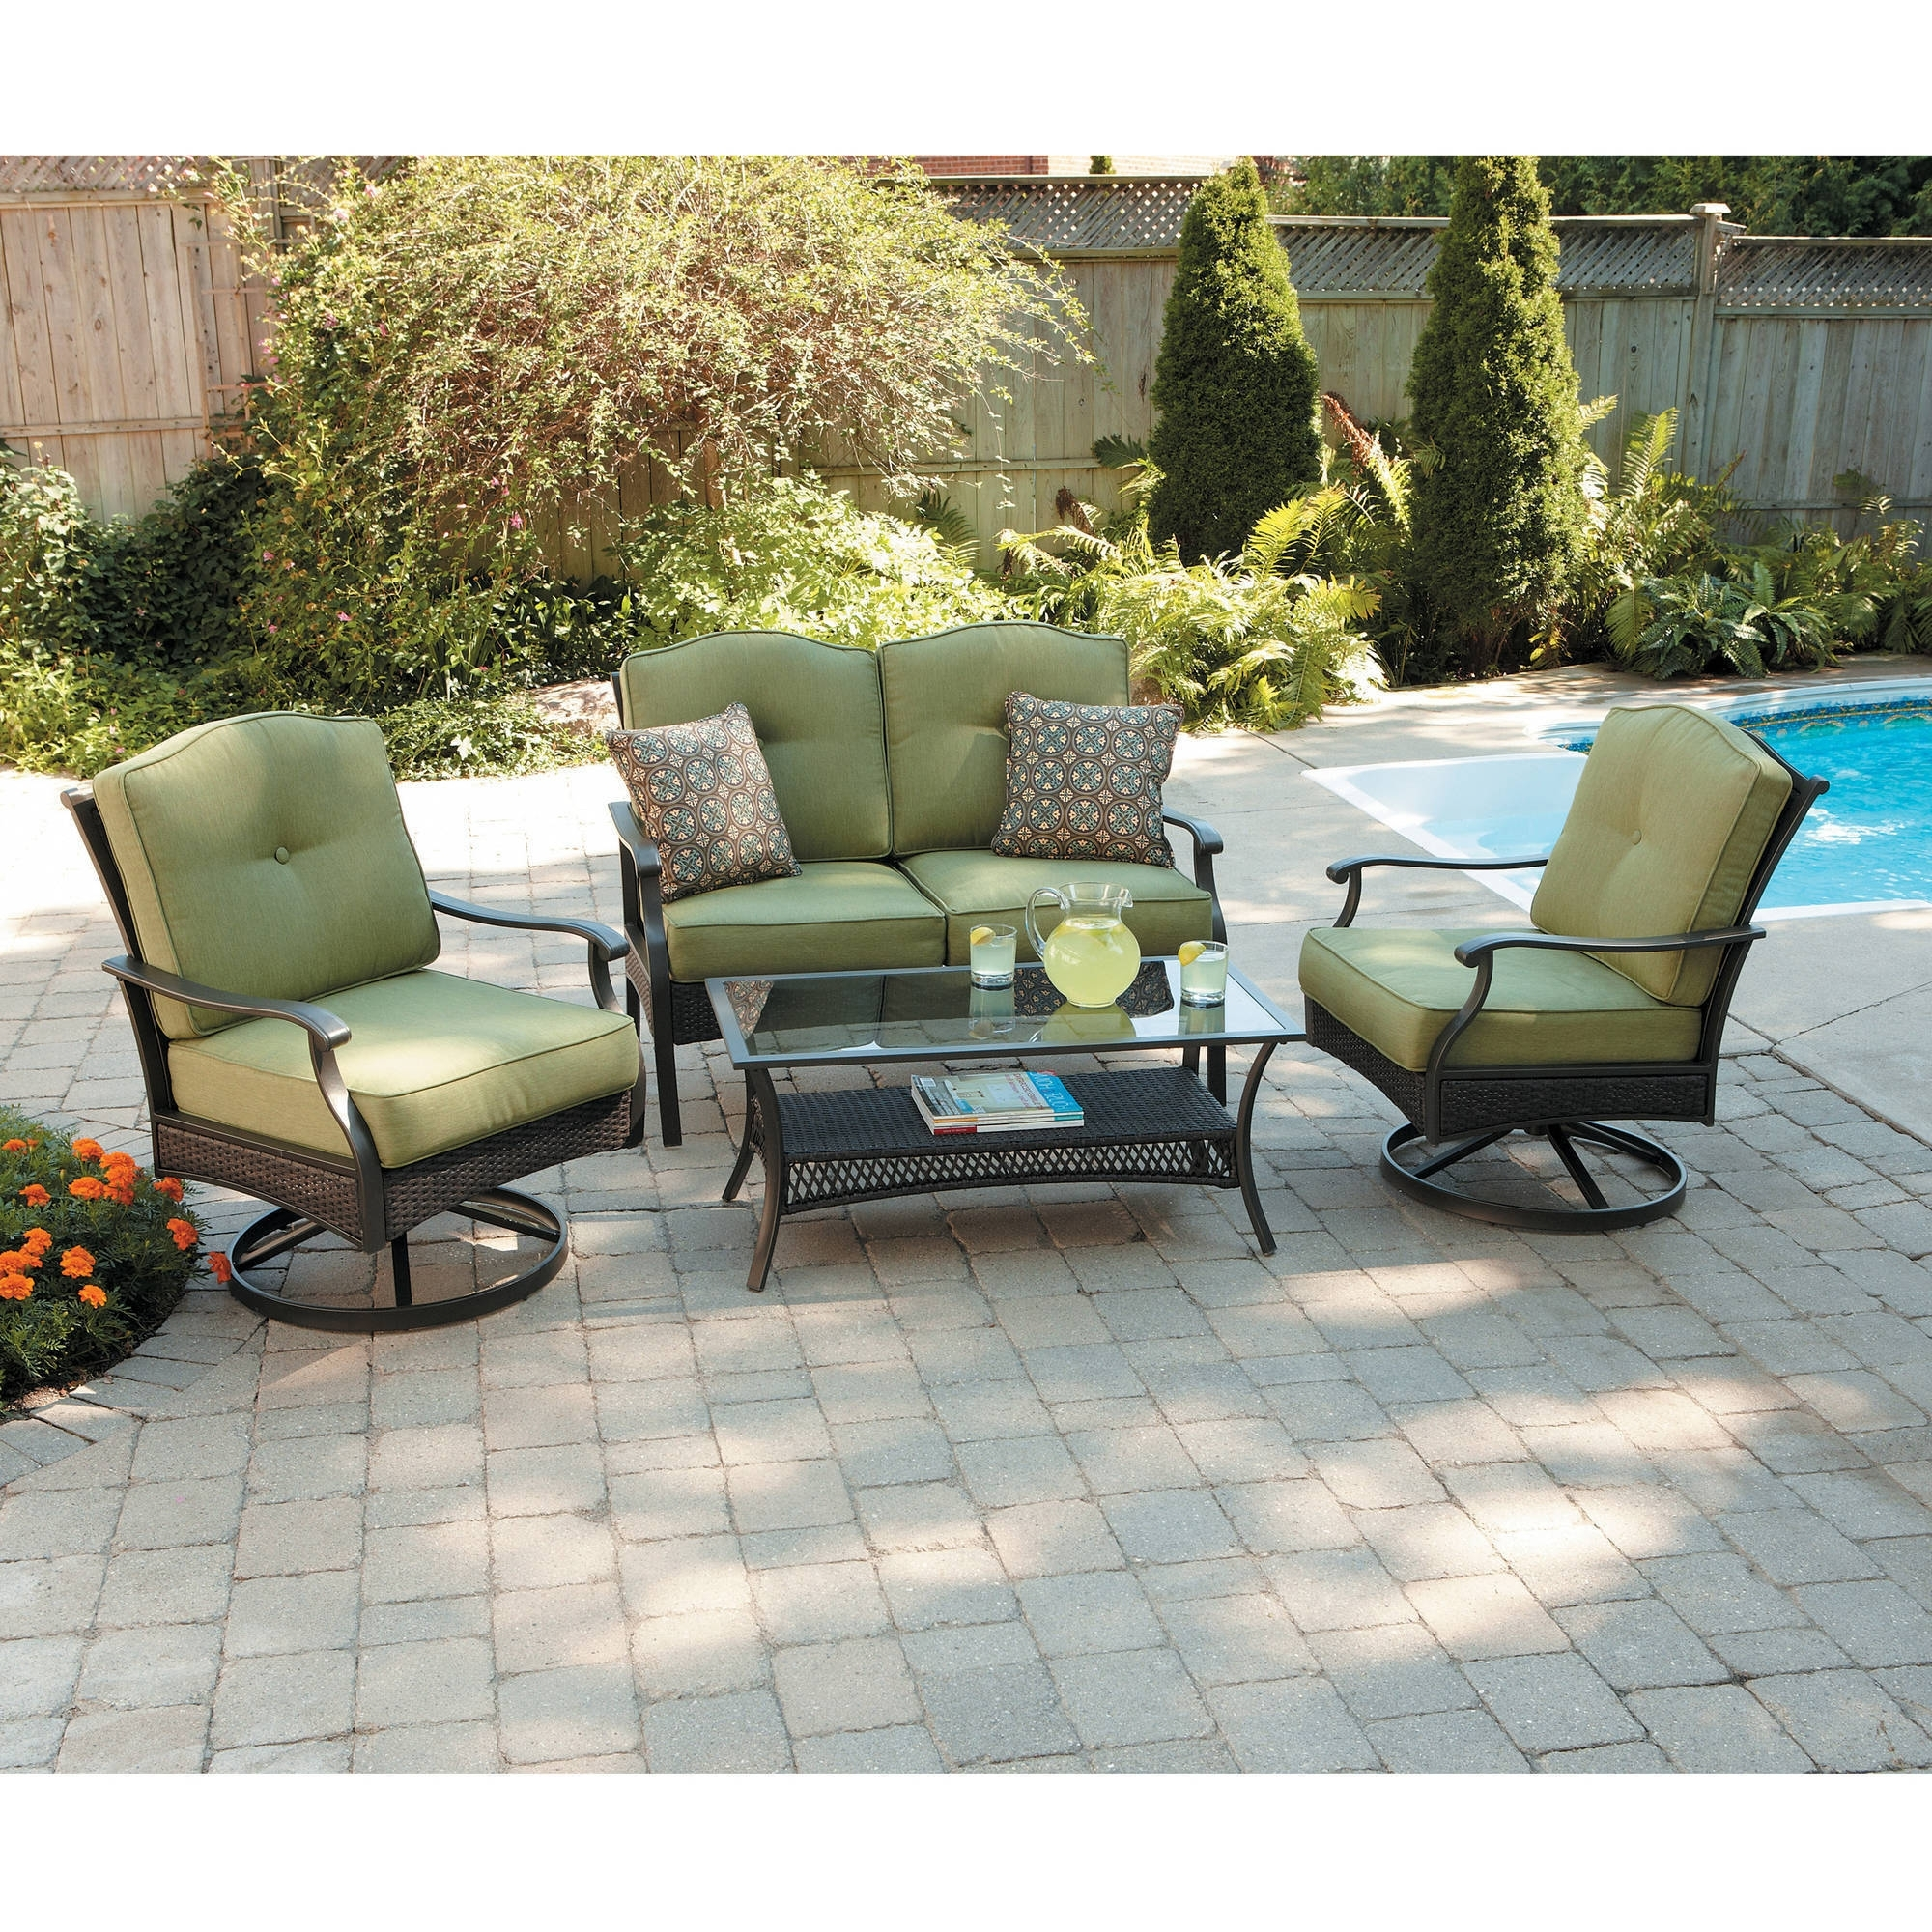 Better Homes And Gardens Providence 4 Piece Patio Conversation Set Within Fashionable Patio Conversation Set With Storage (View 1 of 20)